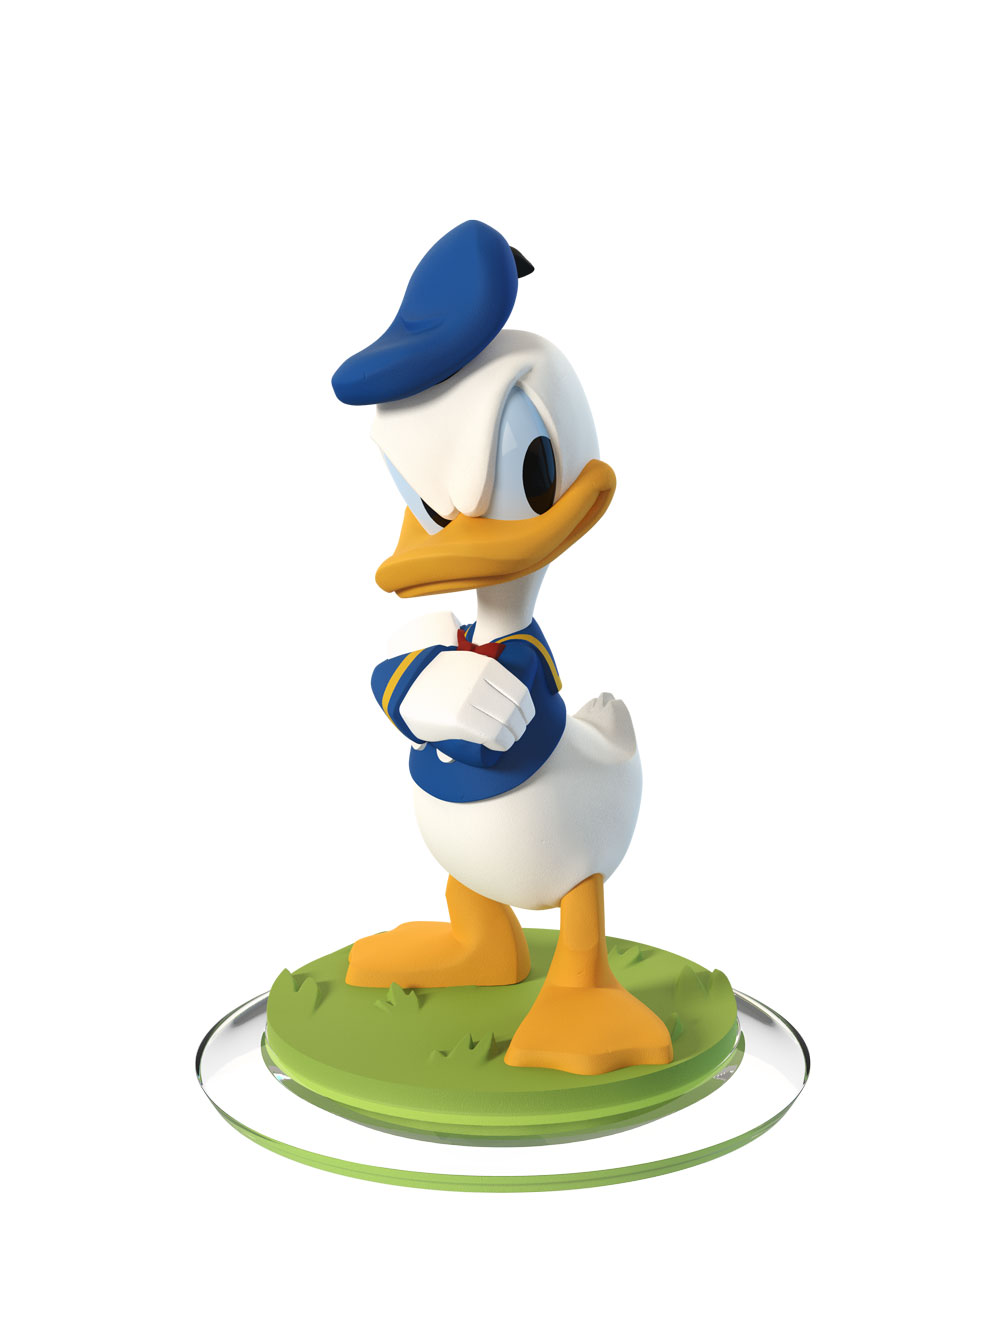 Disney Infinity 2 - Donald Duck Figure